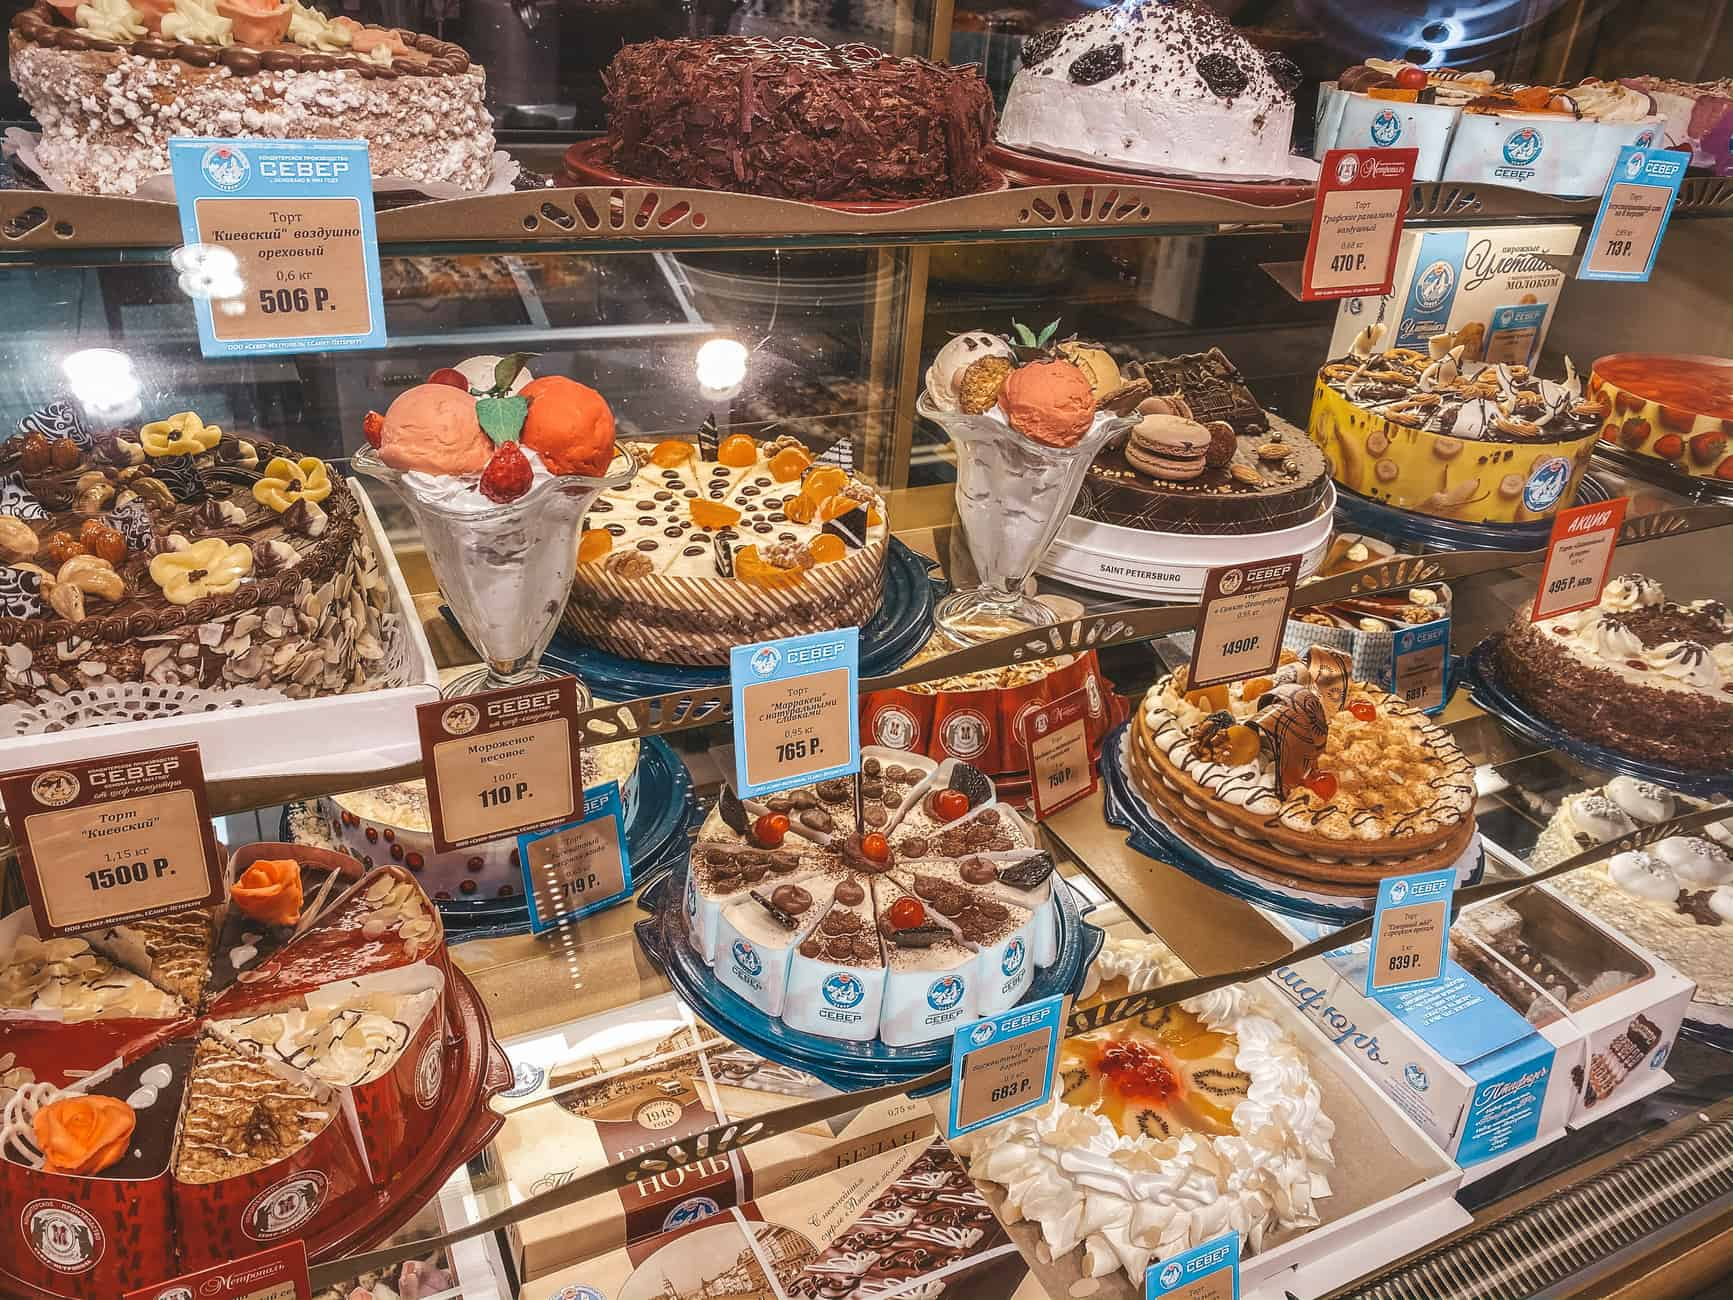 Planning your next trip to Russia and thinking of the best things to eat? Don't worry, you will soon learn about 10+ amazing desserts to try in Russia.